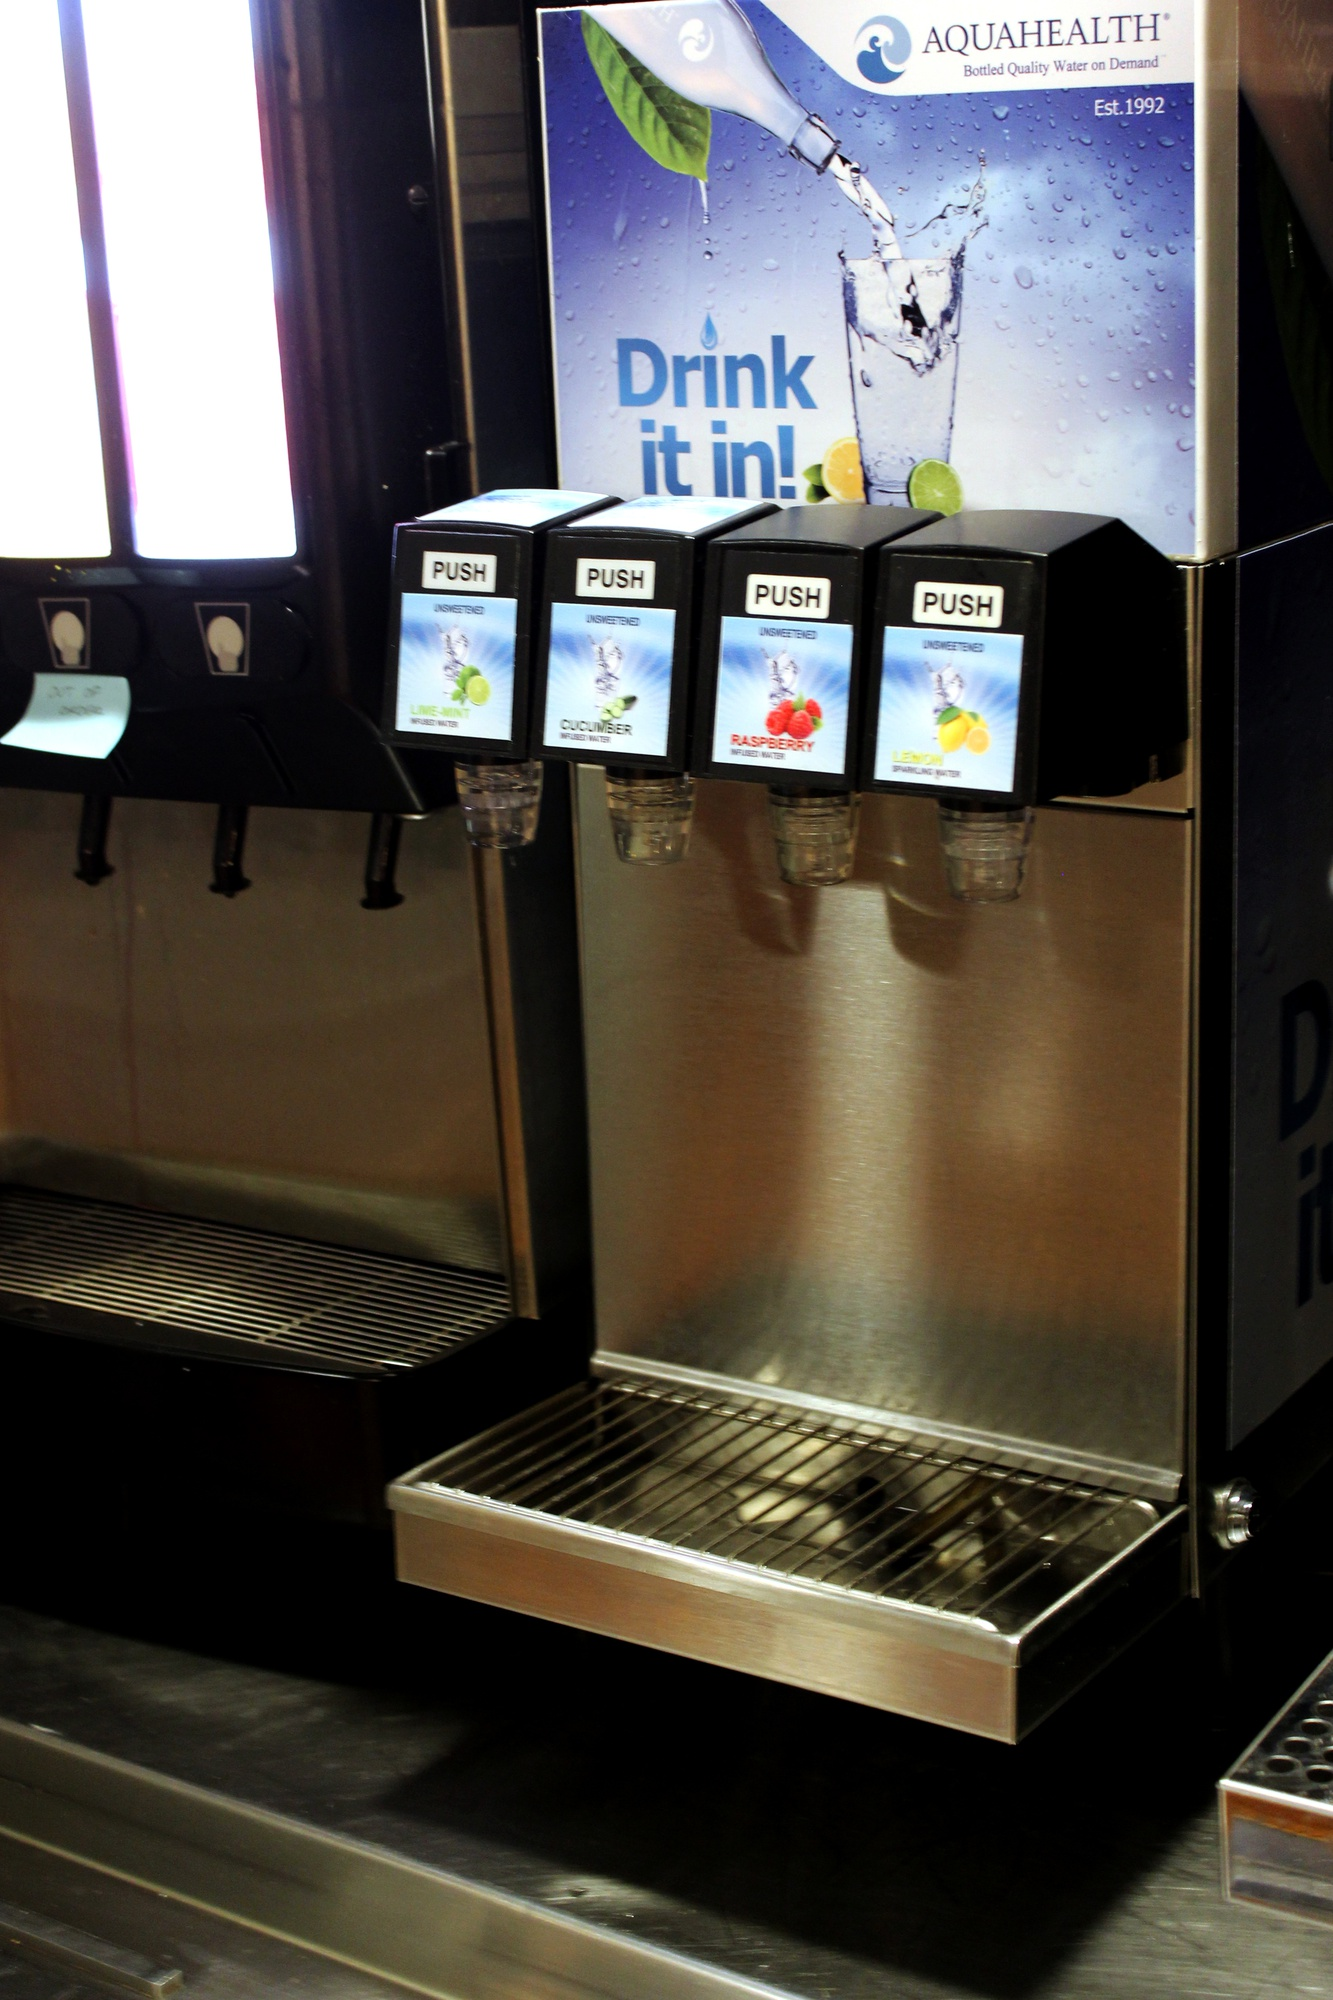 HUDS recently added infused water machines to their beverage options in the college dining halls.